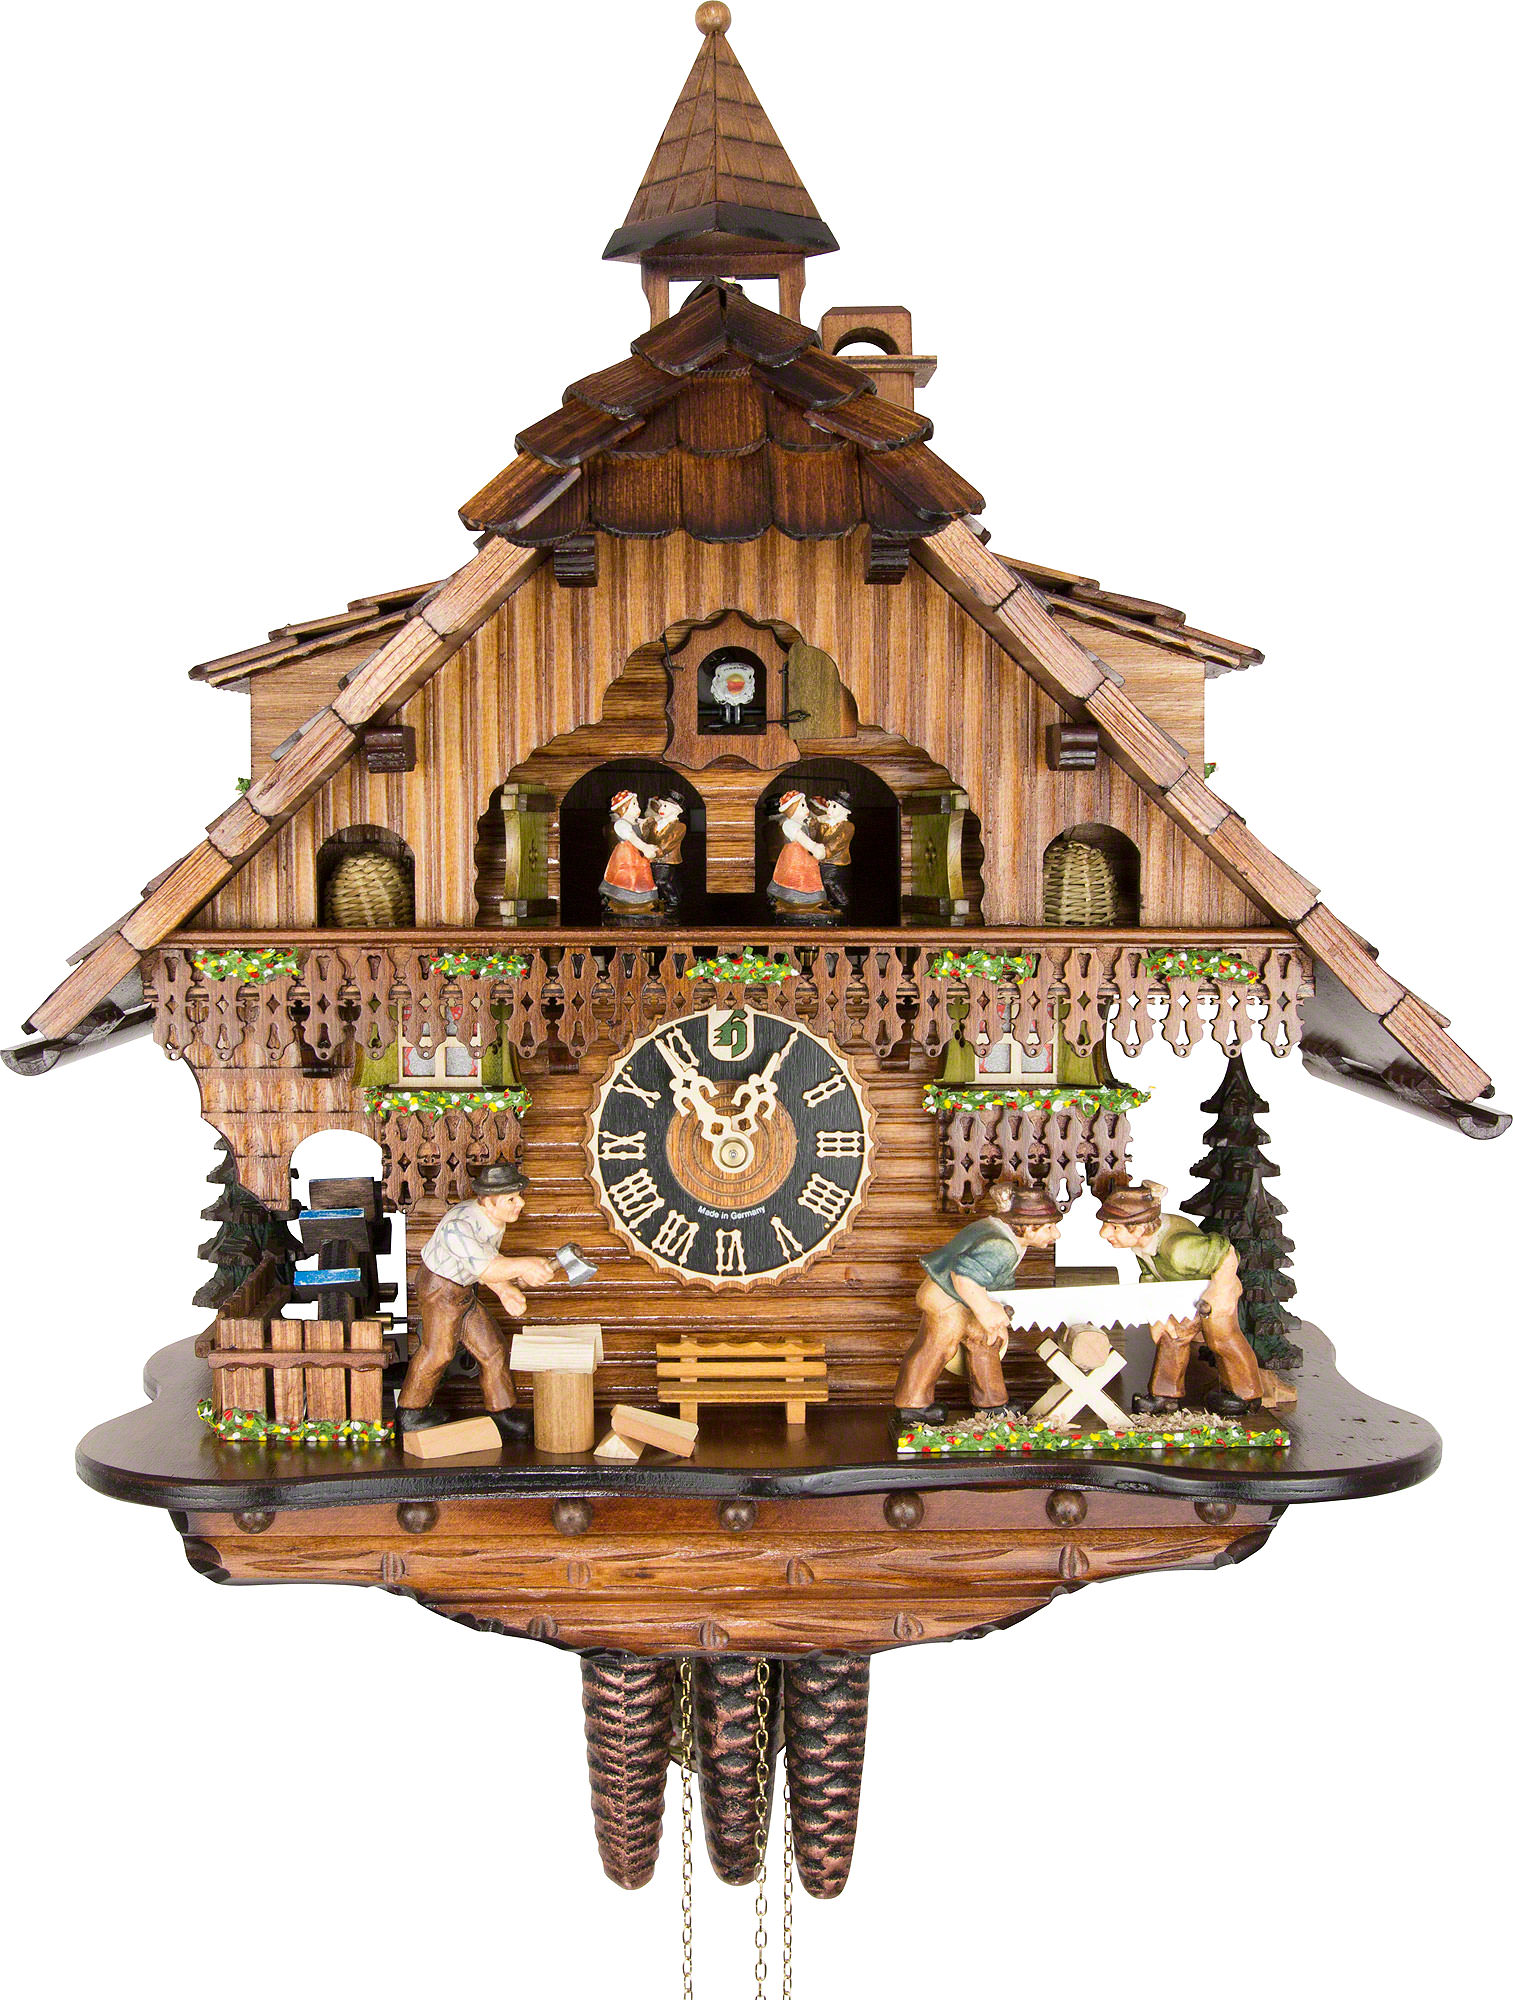 Cuckoo clock 1 day movement chalet style 46cm by h nes 6275t How to make a cuckoo clock